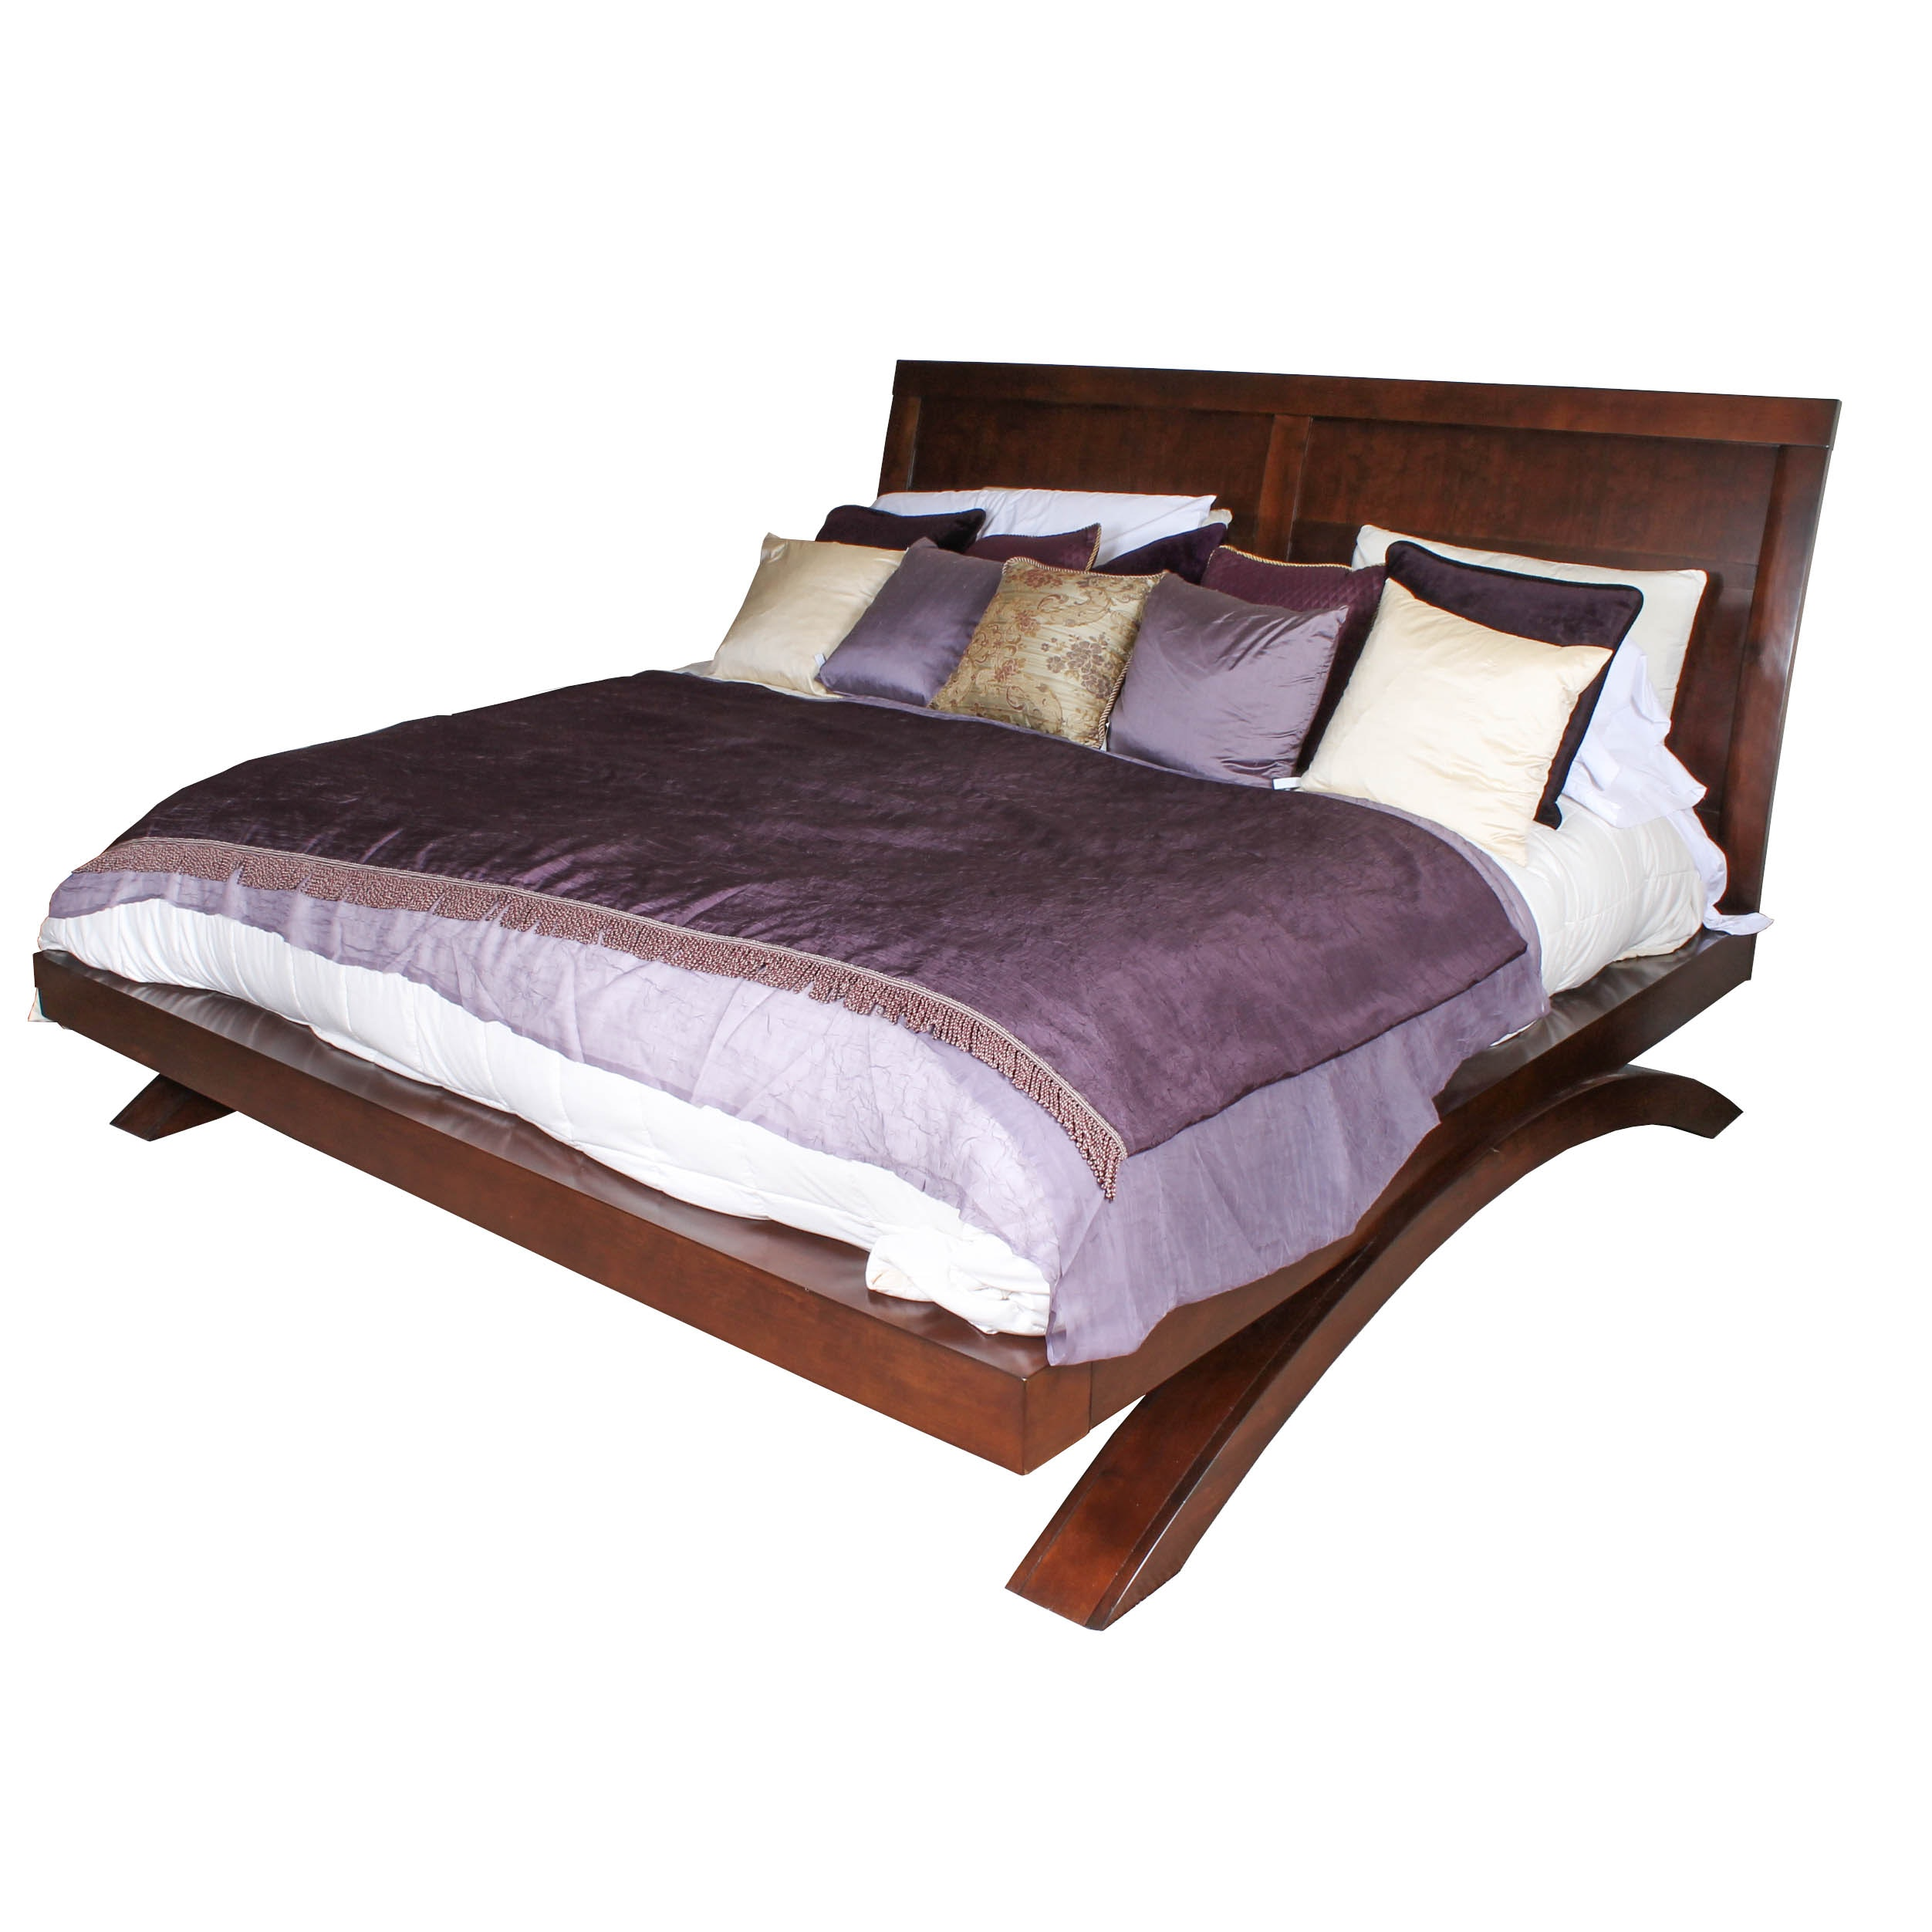 Cherry King Size Platform Bed From Grant Park Collection Ebth